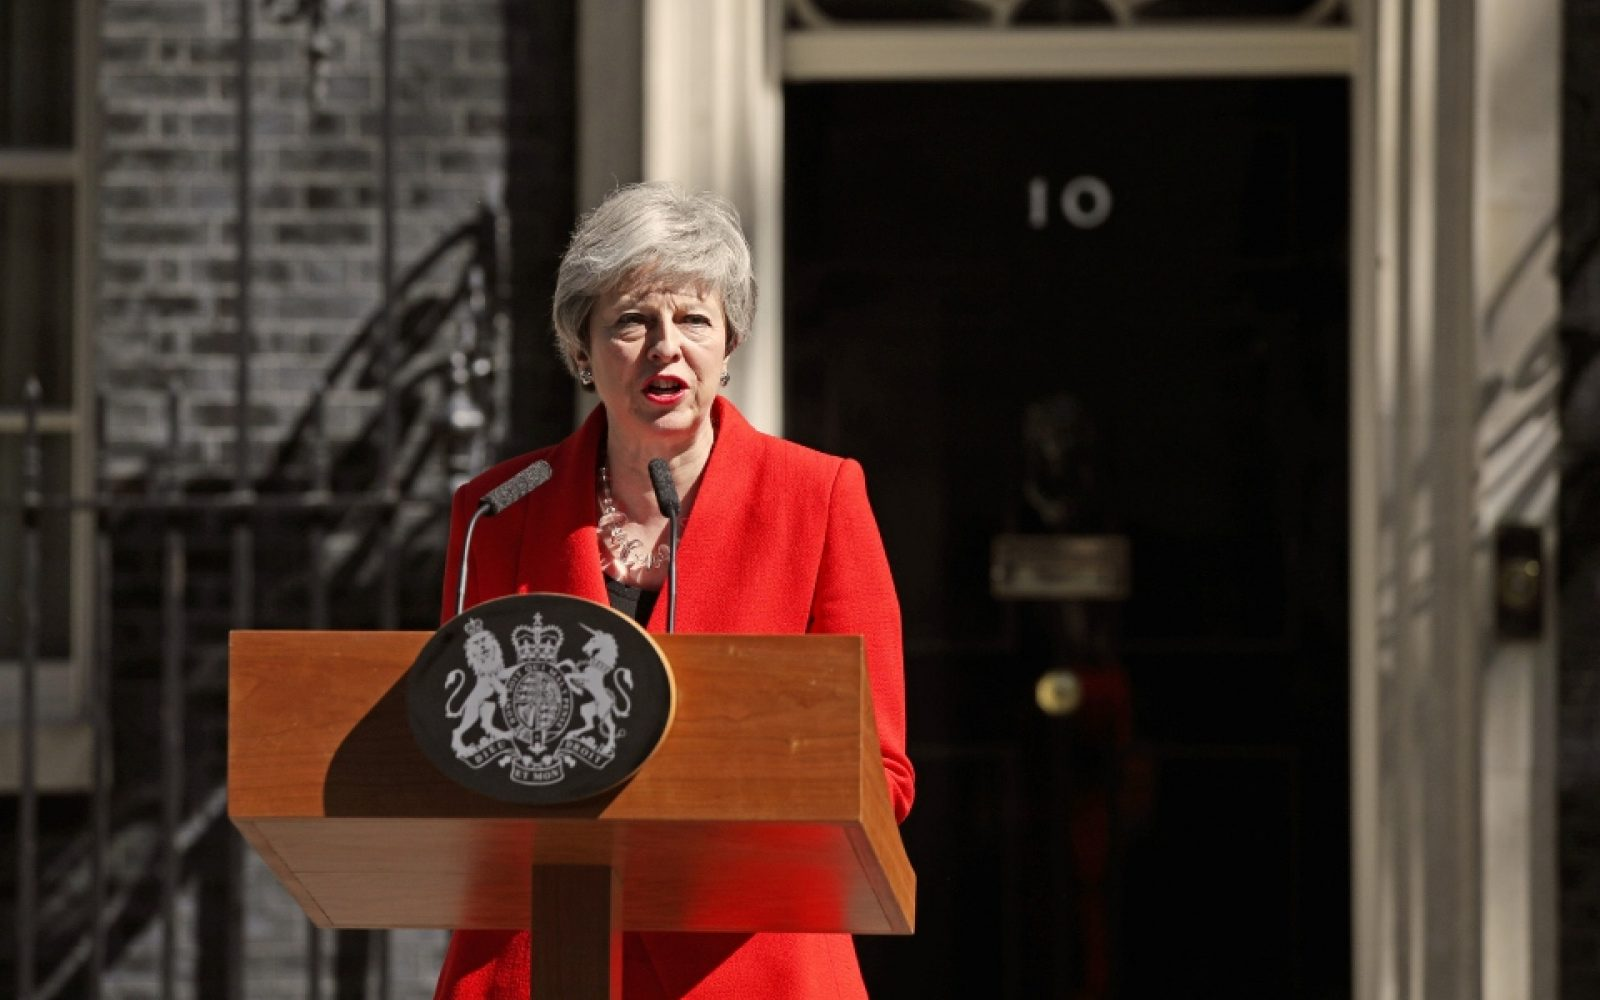 Theresa May was prime minister of the UK from 2016 to 2019. Image: UK Government,